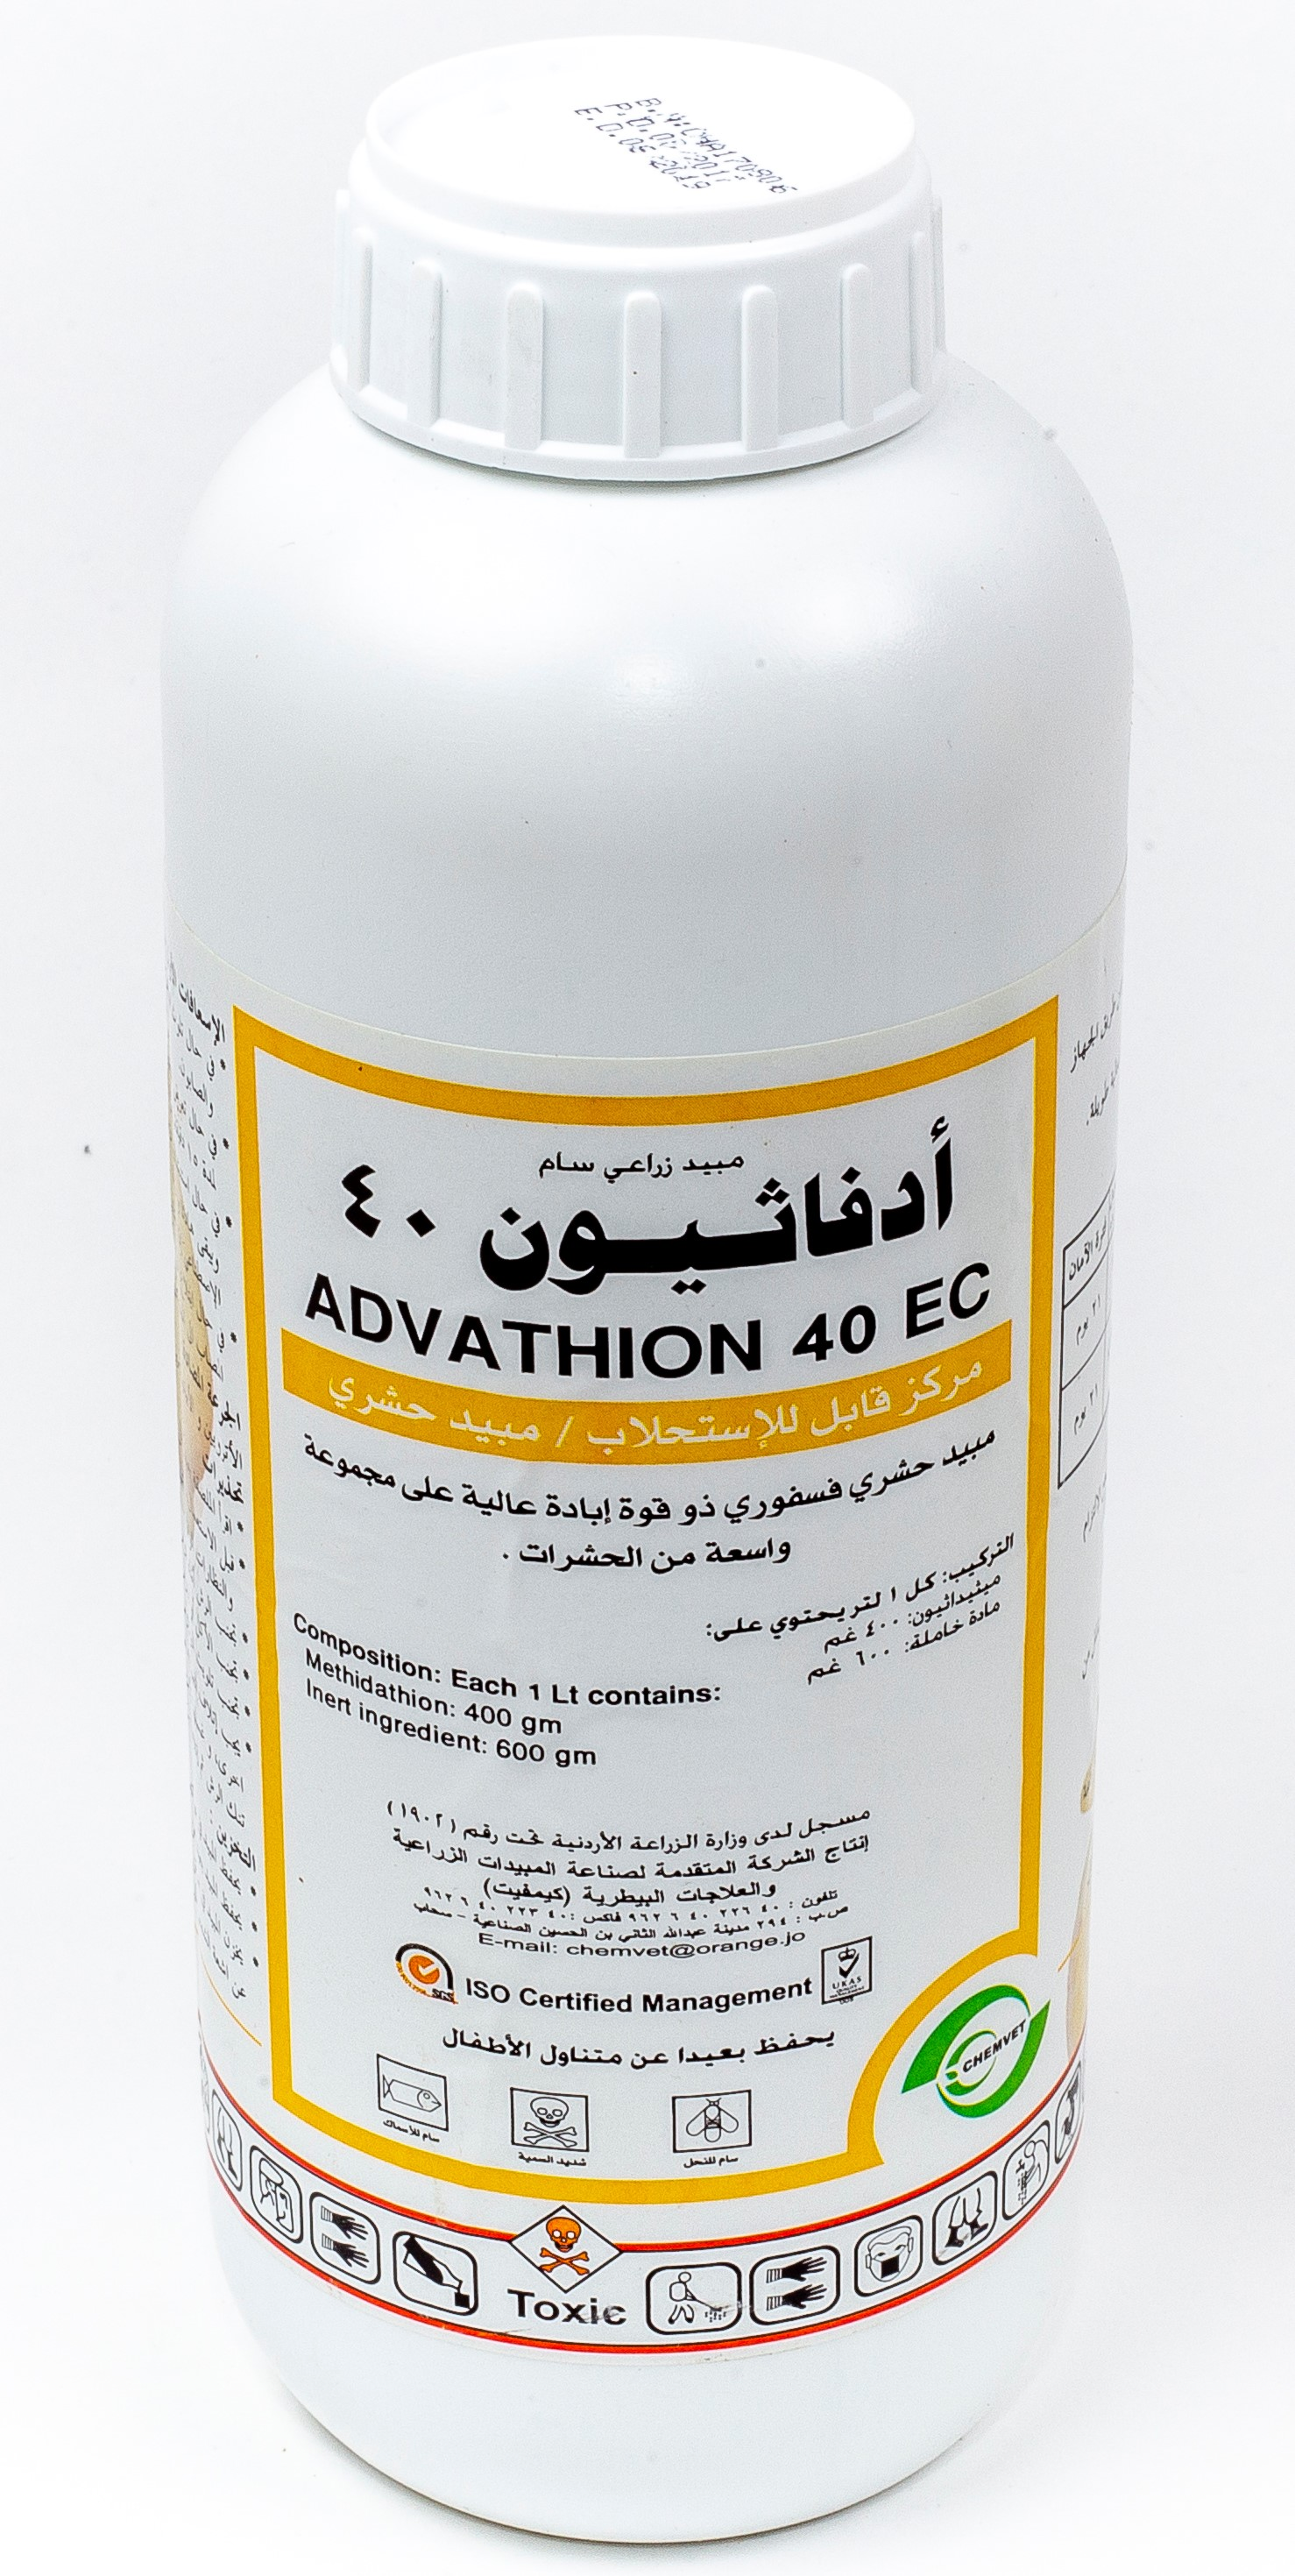 Advathion 40 EC